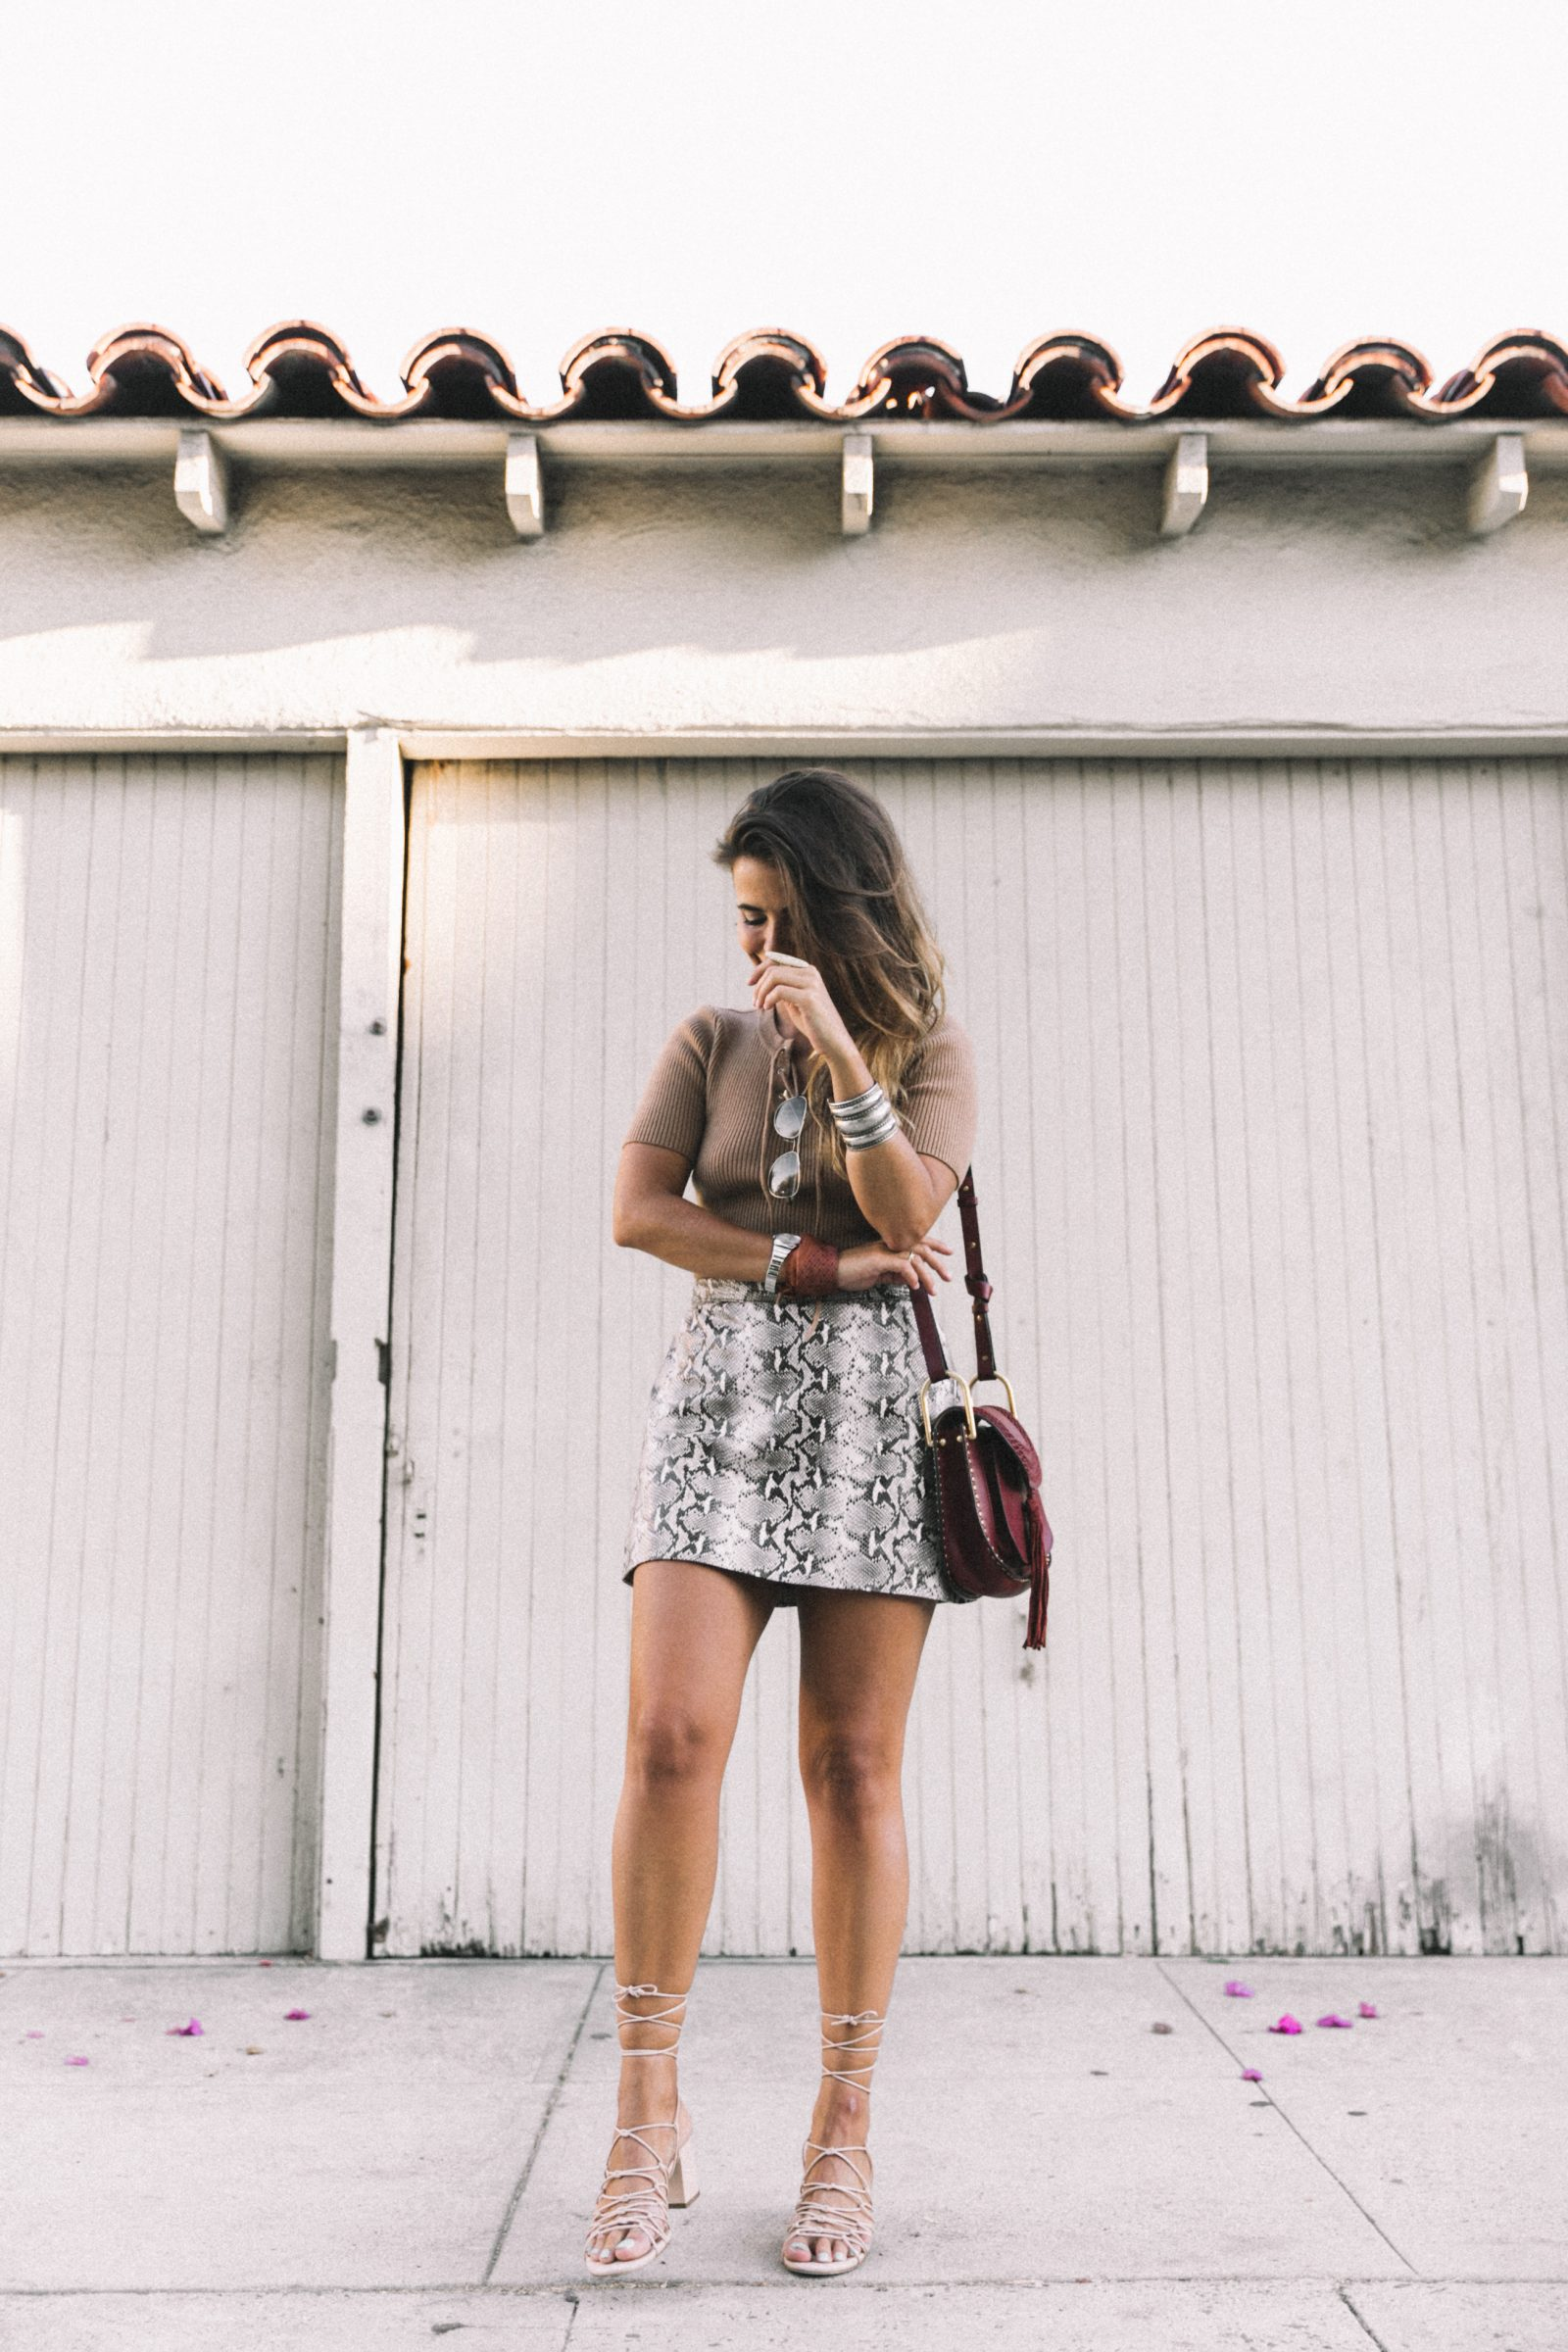 lpa_the_label-revolve_clothing-snake_skirt-lace_up_sweater-knotted_sandals-chloe_hudson_bag-outfit-street_style-los_angeles-21